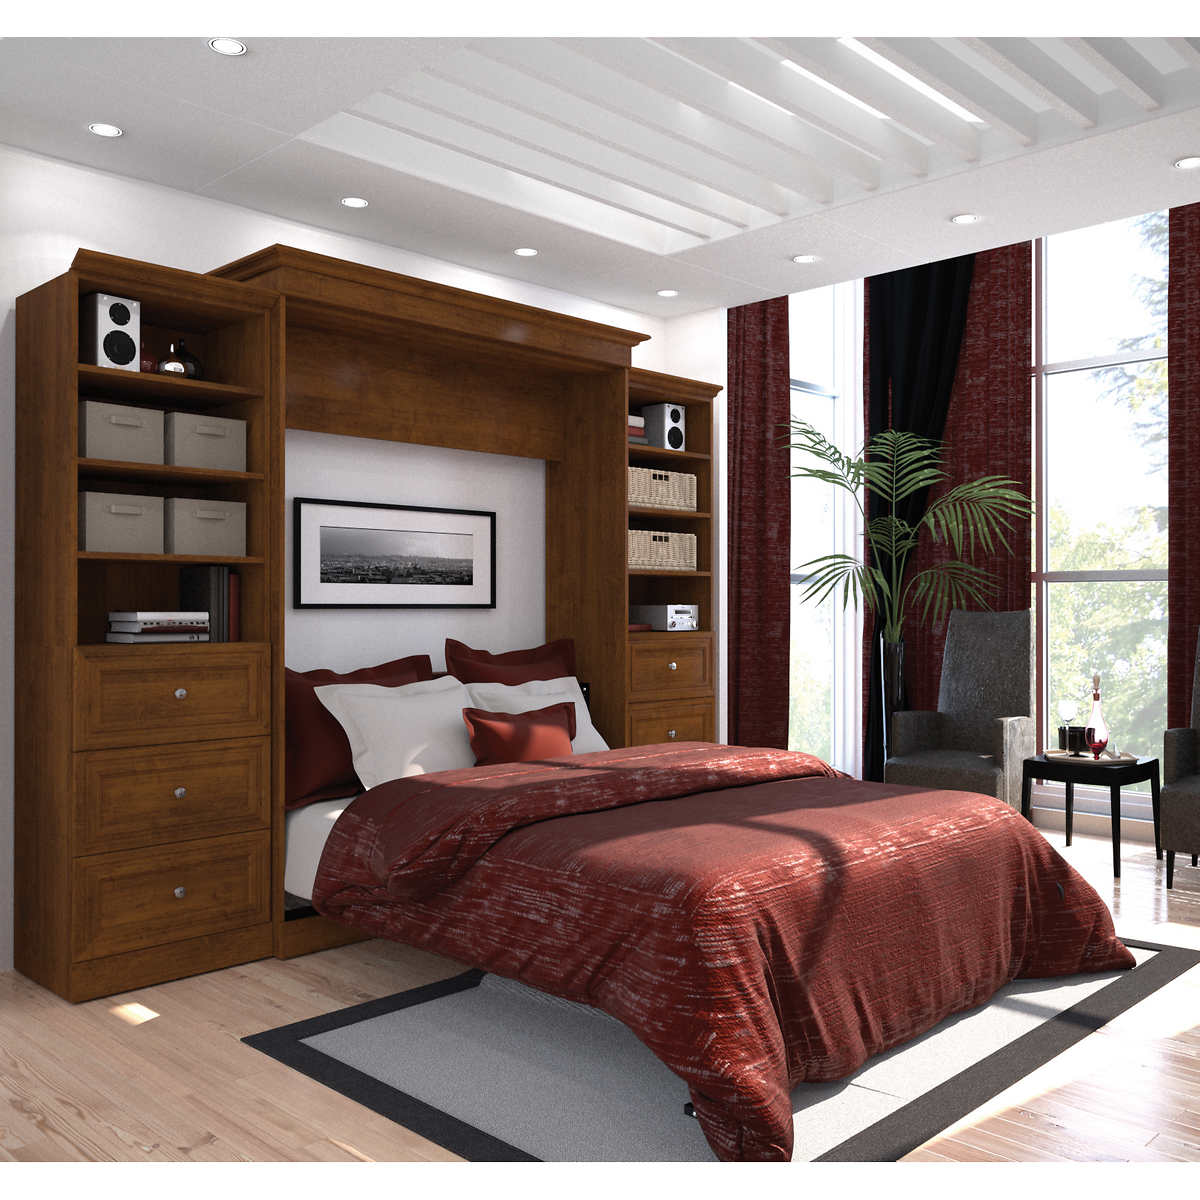 Bestar audrea queen wall bed with two 25 storage units and bestar audrea queen wall bed with two 25 storage units and drawers in tuscany amipublicfo Gallery